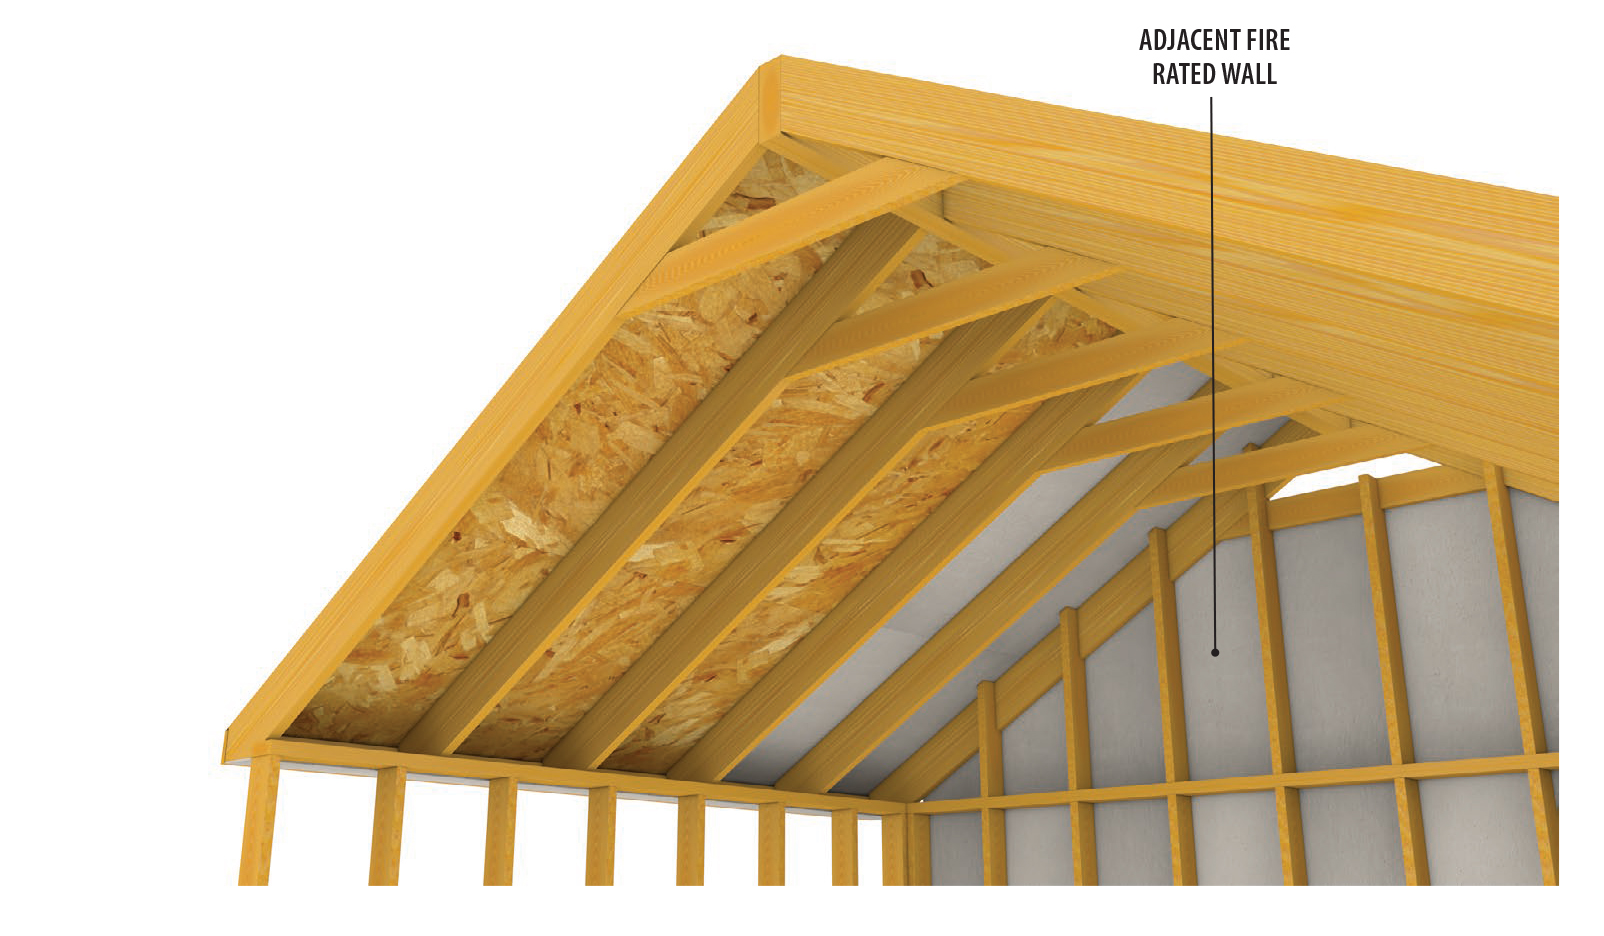 Lp flameblock fire rated osb for residential builders lp for What to use for roof sheathing